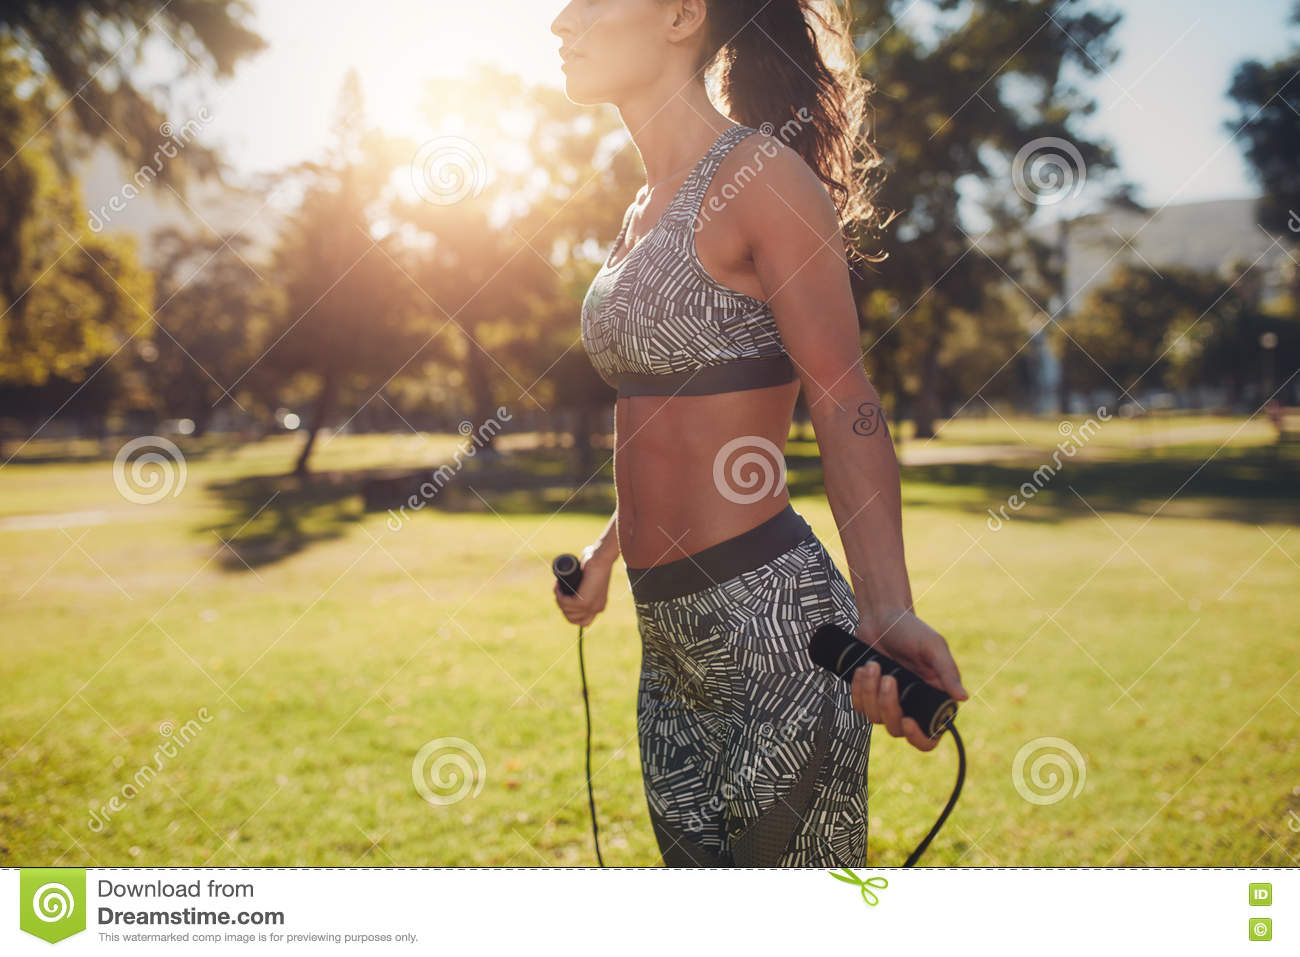 Sporty woman skipping in a park